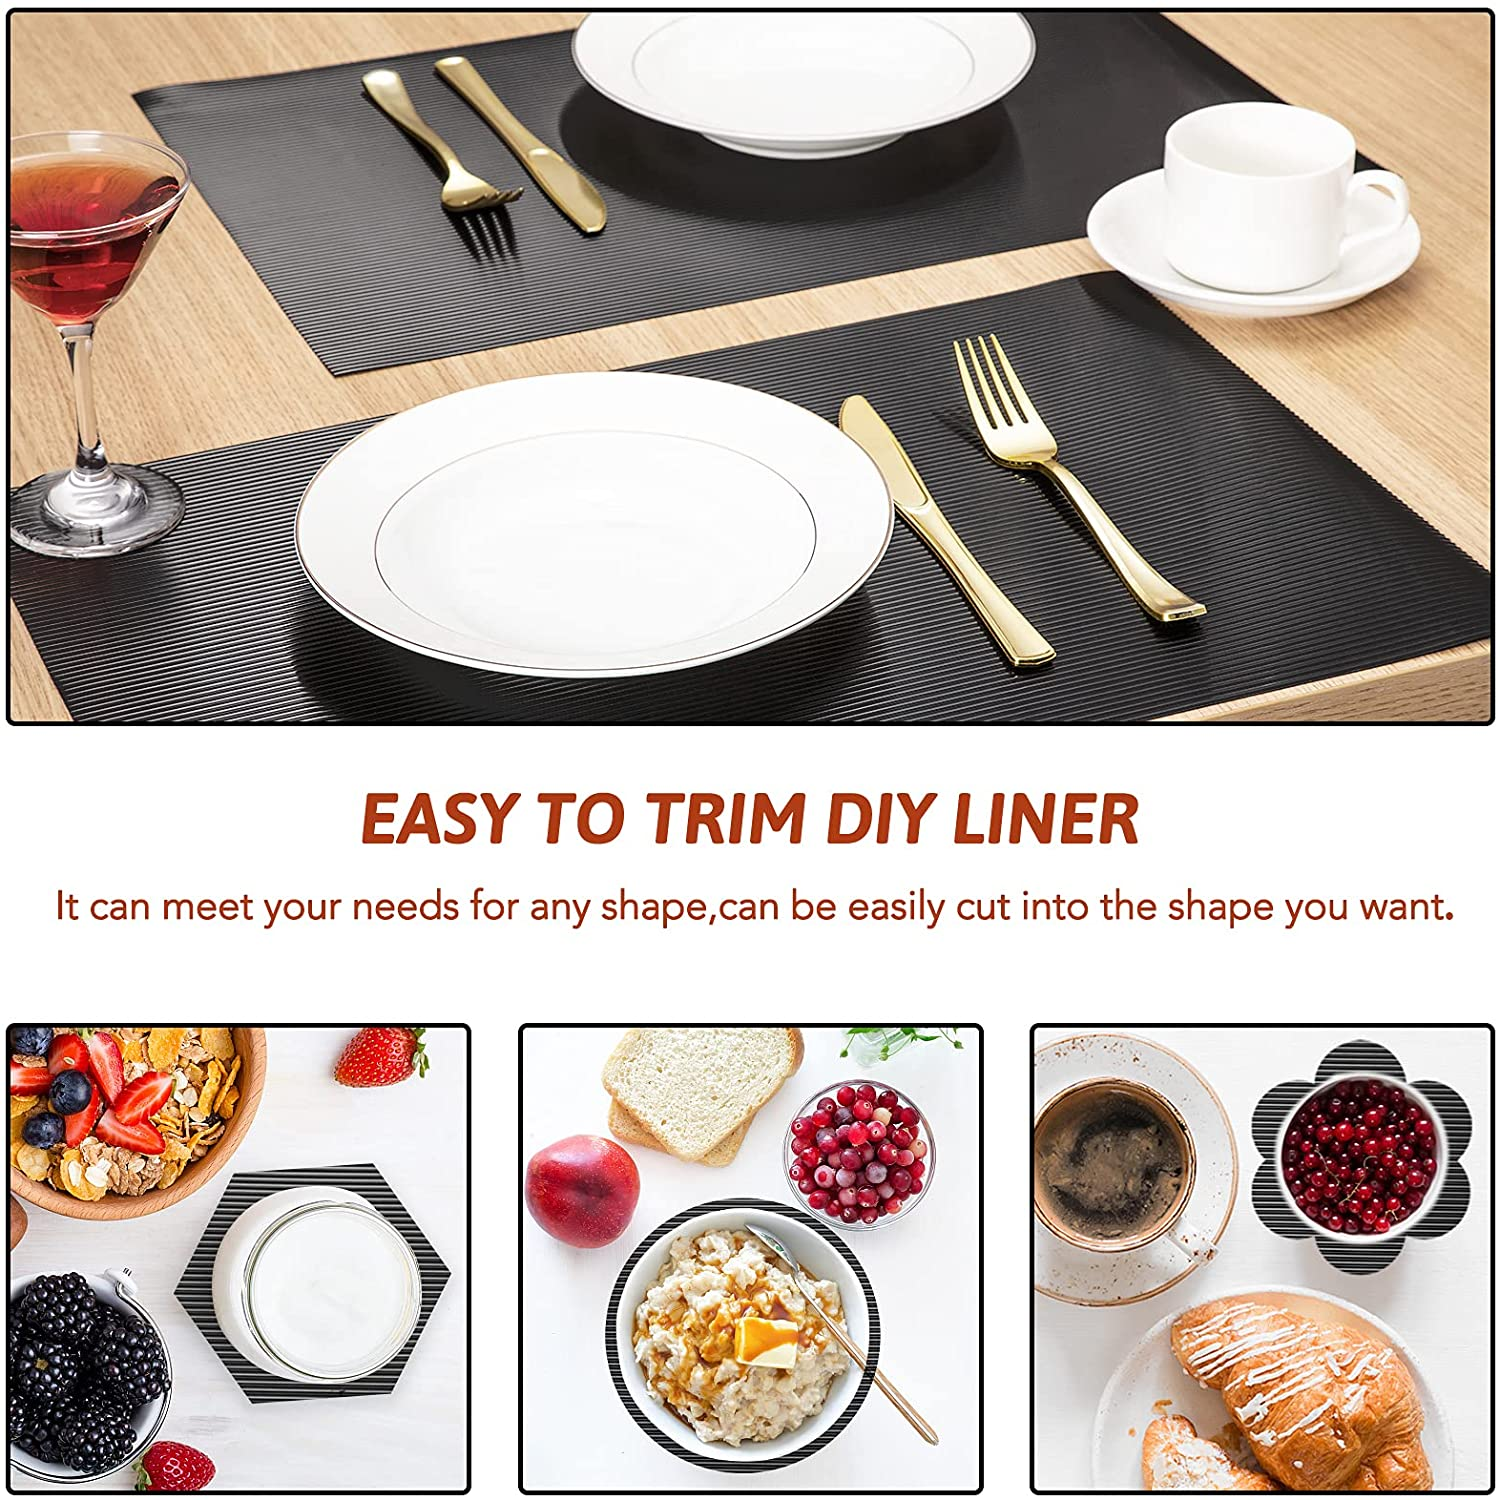 """Glotoch Shelf Liner 12"""" x 30 ft. - Non Adhesive Refrigerator, Kitchen, Drawer Liners, Waterproof and Durable Fridge Table Place Mats for Cupboard, Cabinet, Drawer Liner, Black"""